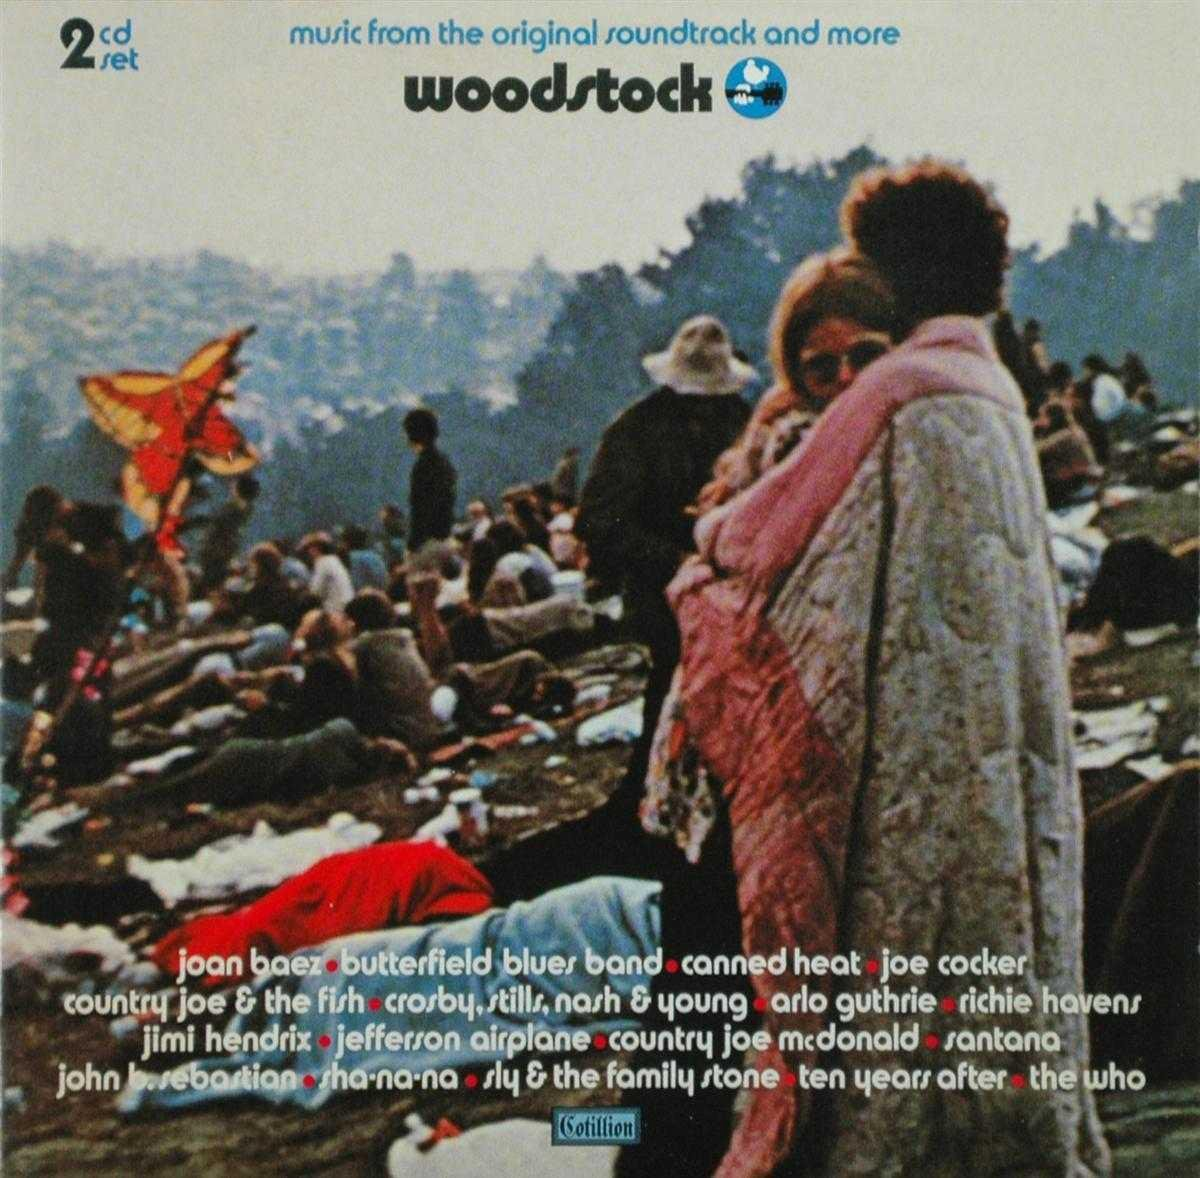 Woodstock: Music from the Original Soundtrack and More - Woodstock